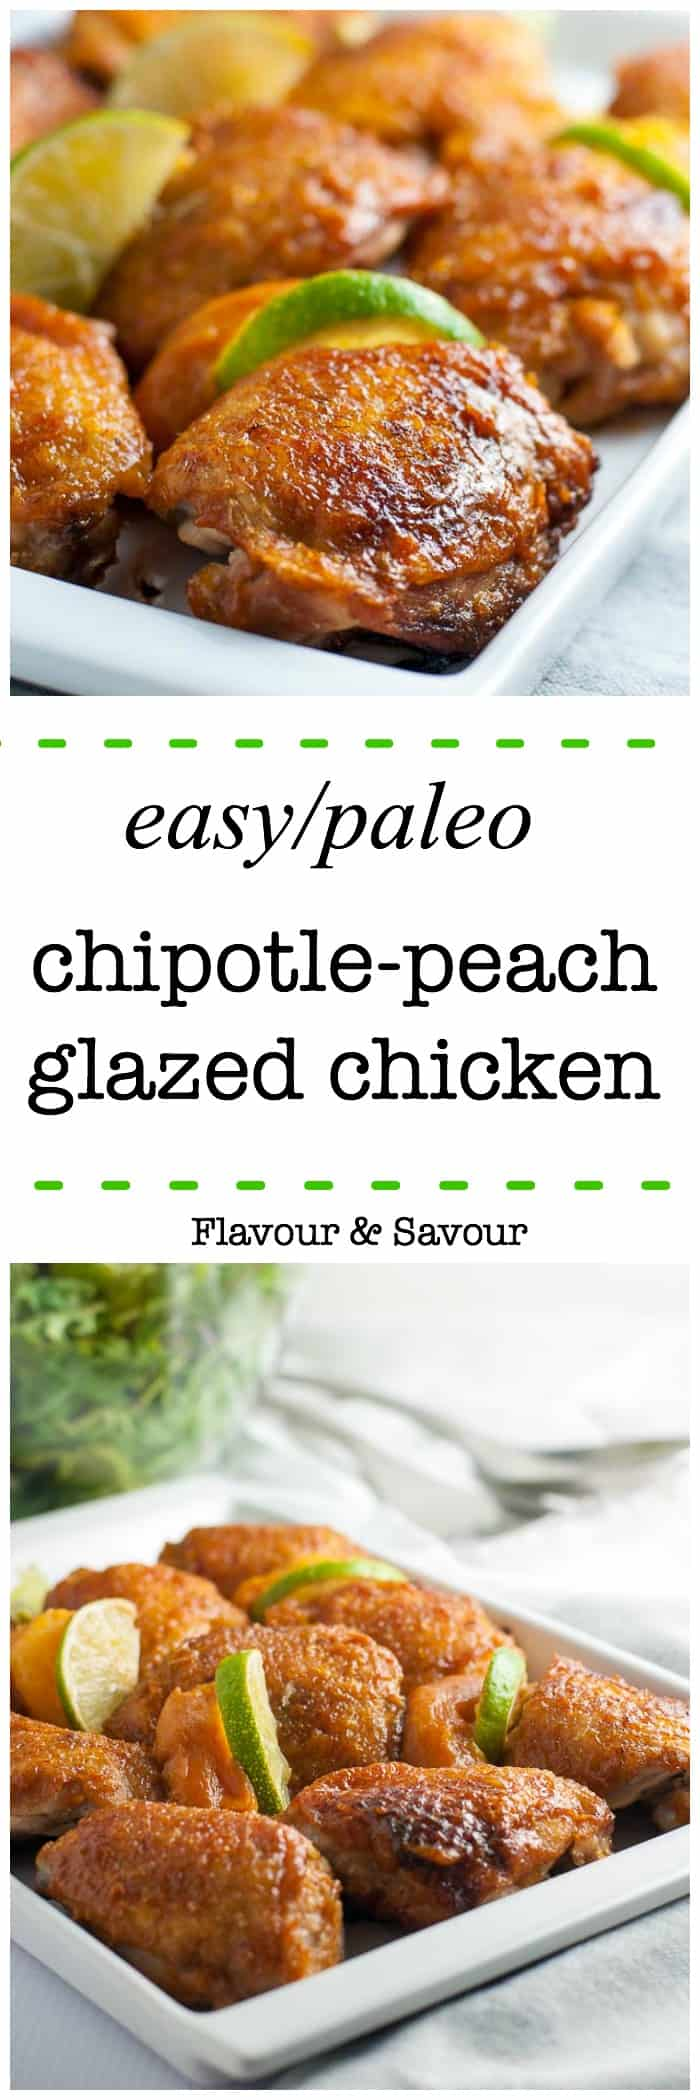 This recipe for Chipotle Peach Glazed Chicken is easy and needs only 4 ingredients. It makes crispy chicken with a glaze that's sweet with a little heat. Sweet succulent peaches, smoky chipotle and a hint of tangy lime combine to make a glaze that smothers the crispy skin of these juicy chicken thighs. And it's paleo too! |www.flavourandsavour.com